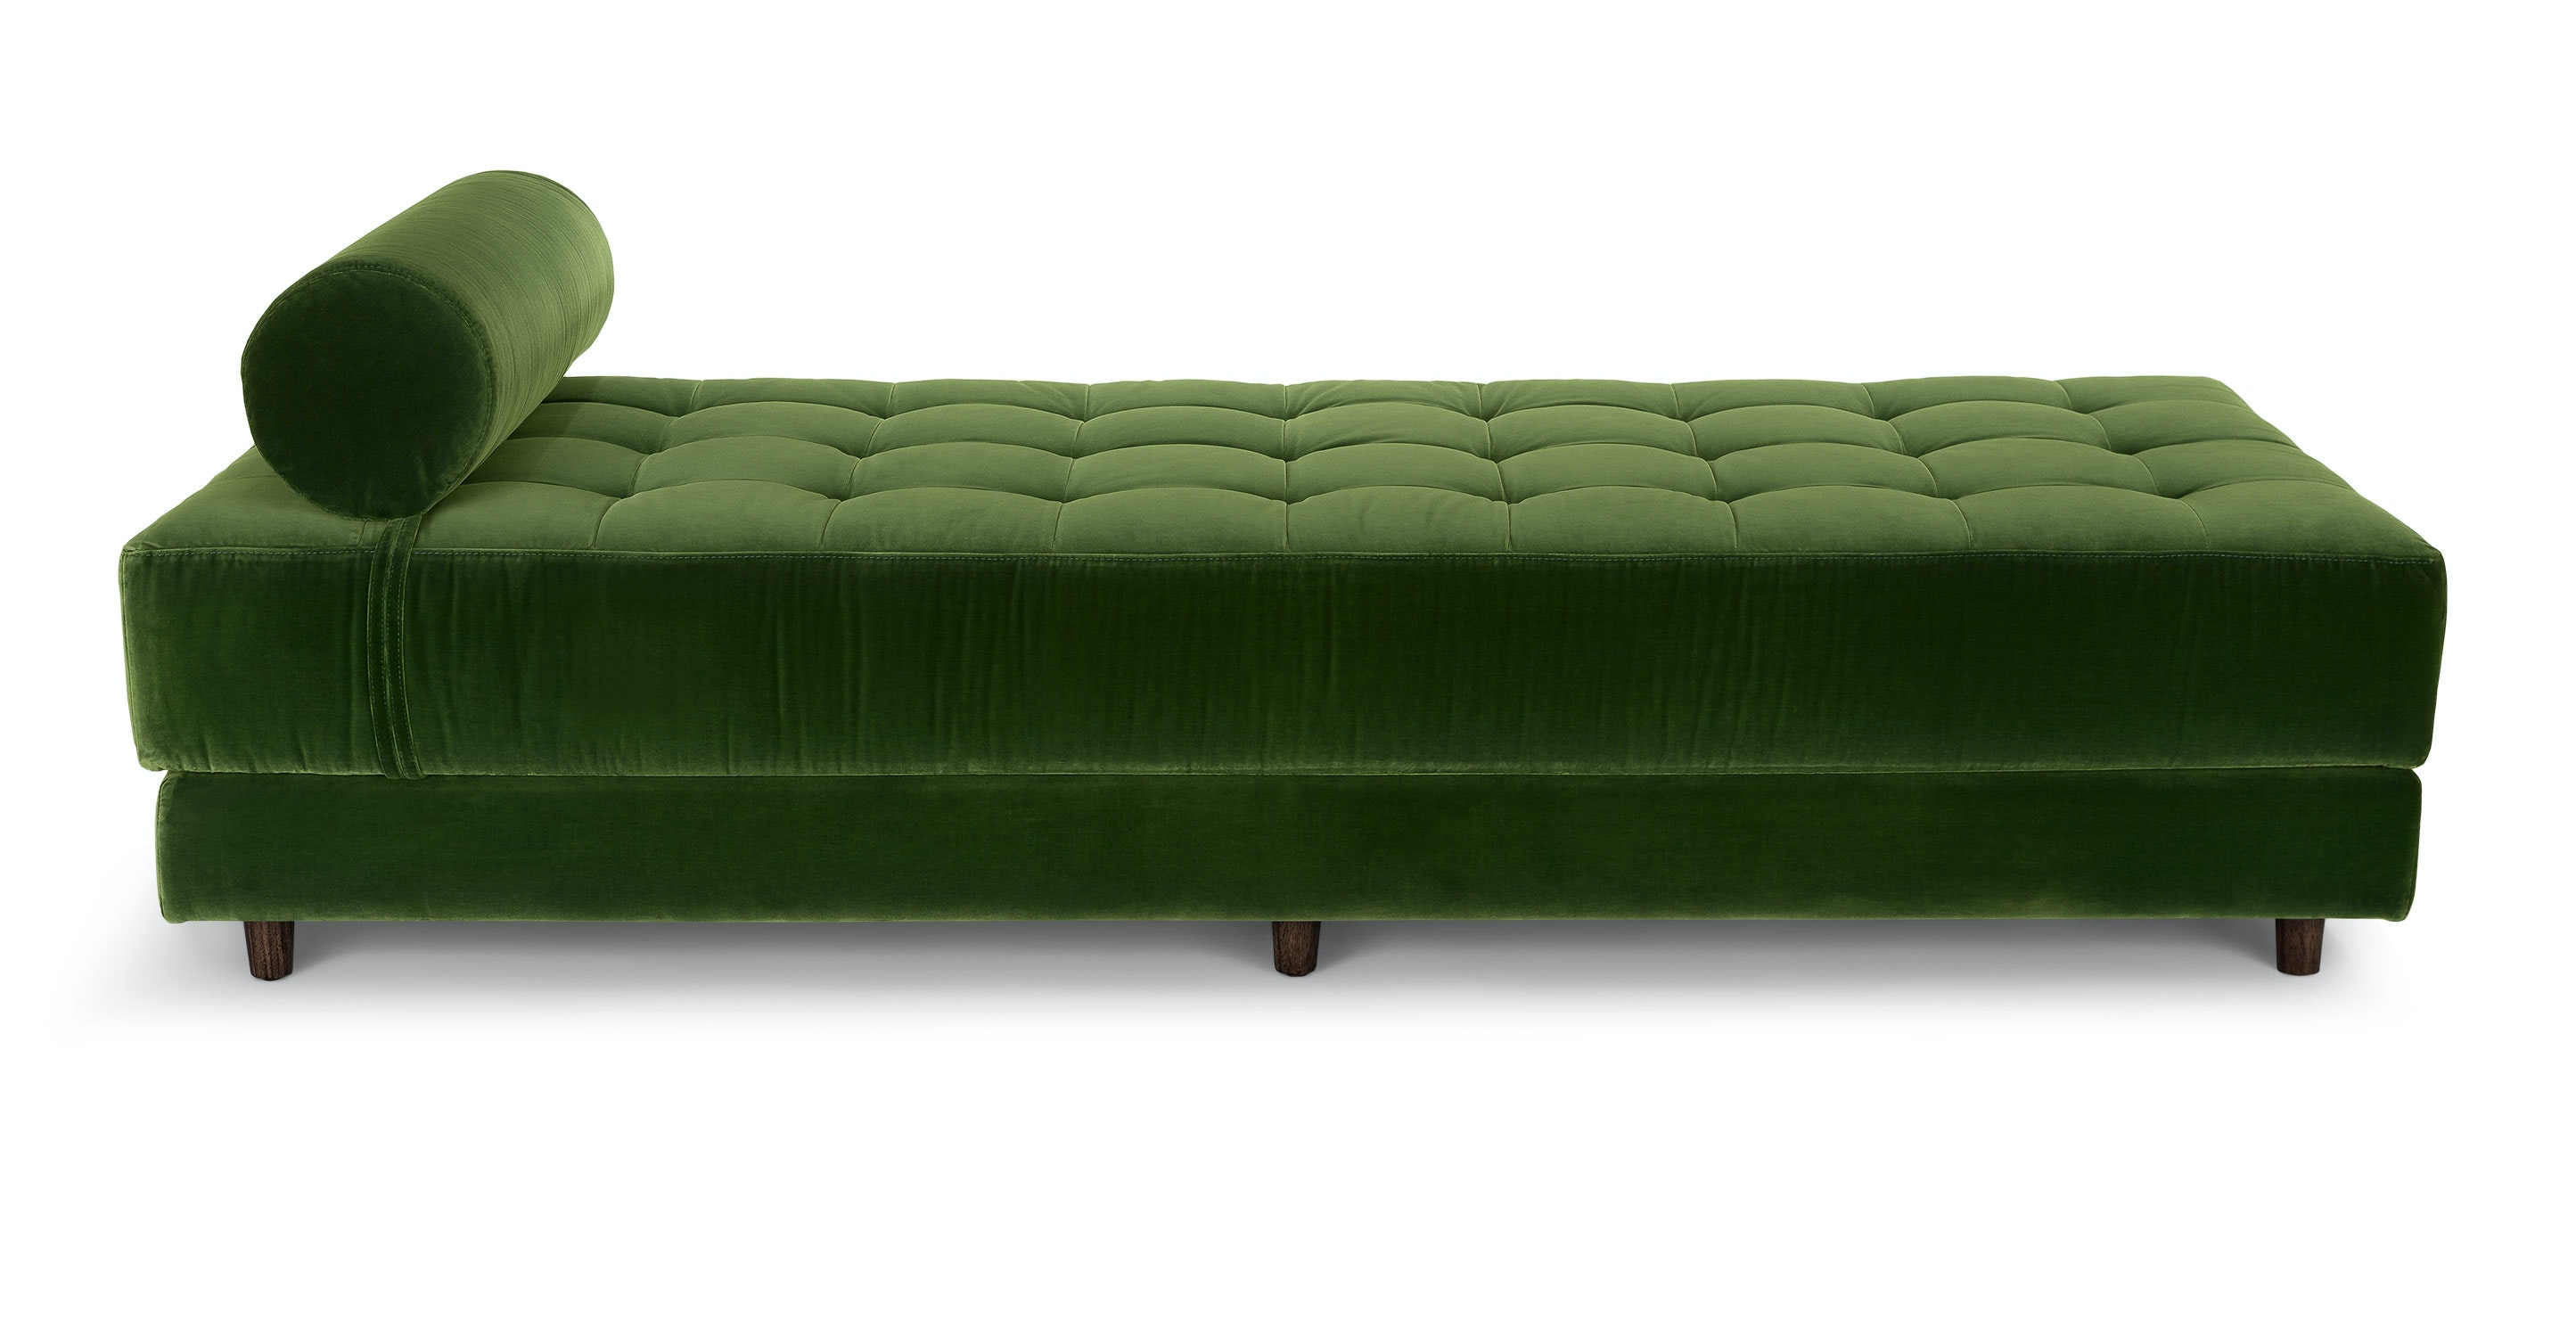 Sven Gr Green Daybed Sofas Article Modern Mid Century And Scandinavian Furniture